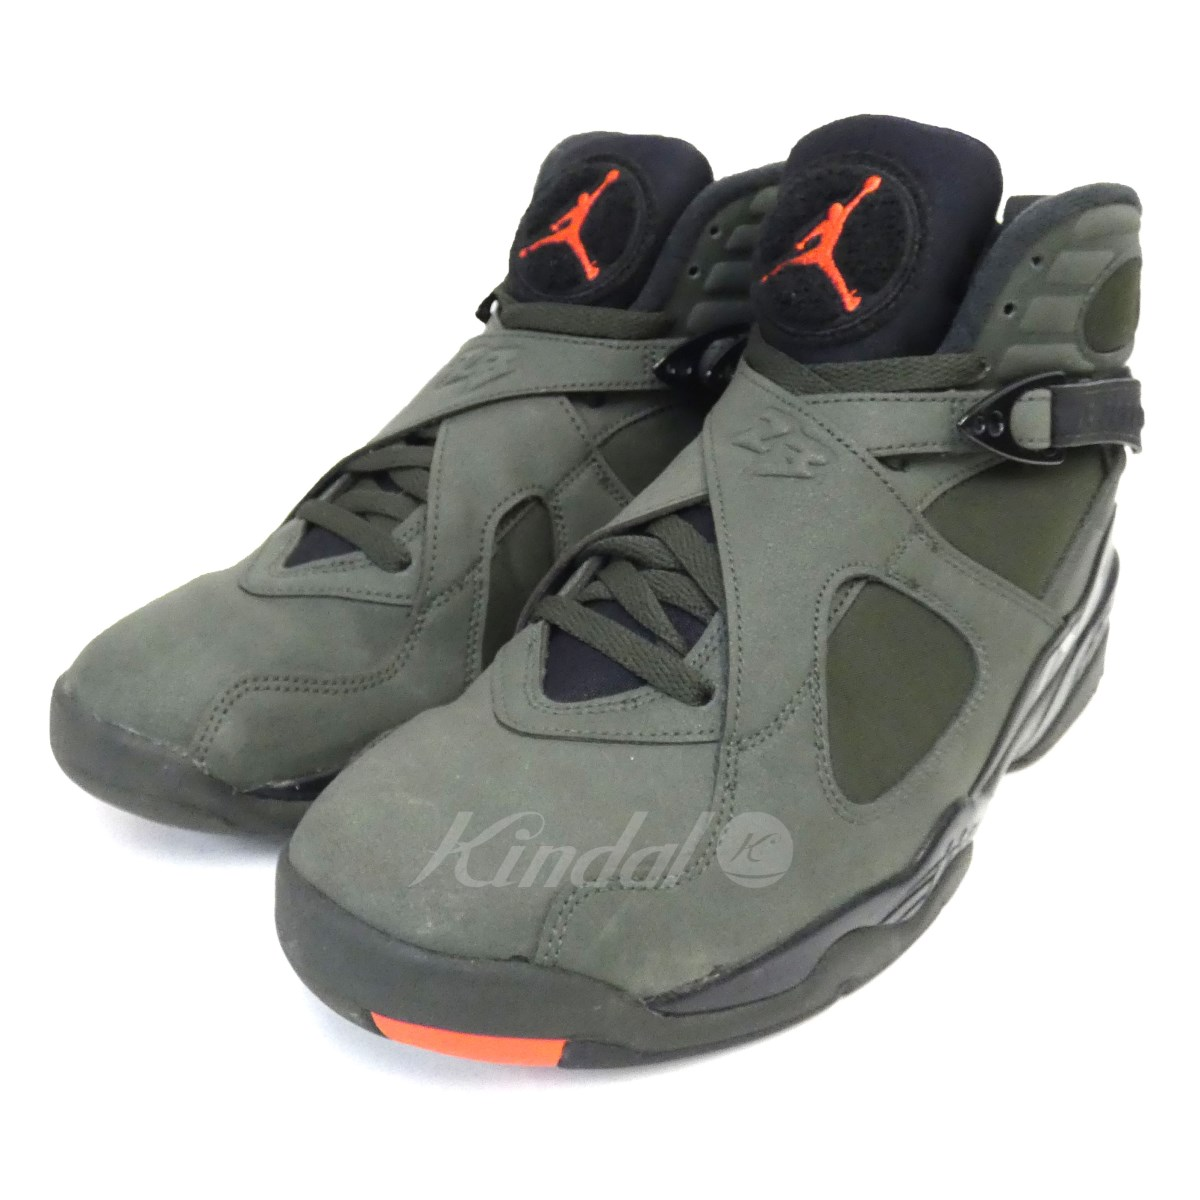 【中古】NIKE 「AIR JORDAN 8 RETRO TAKE FLIGHT」スニーカー 3035381-305 【送料無料】 【078187】 【KIND1550】